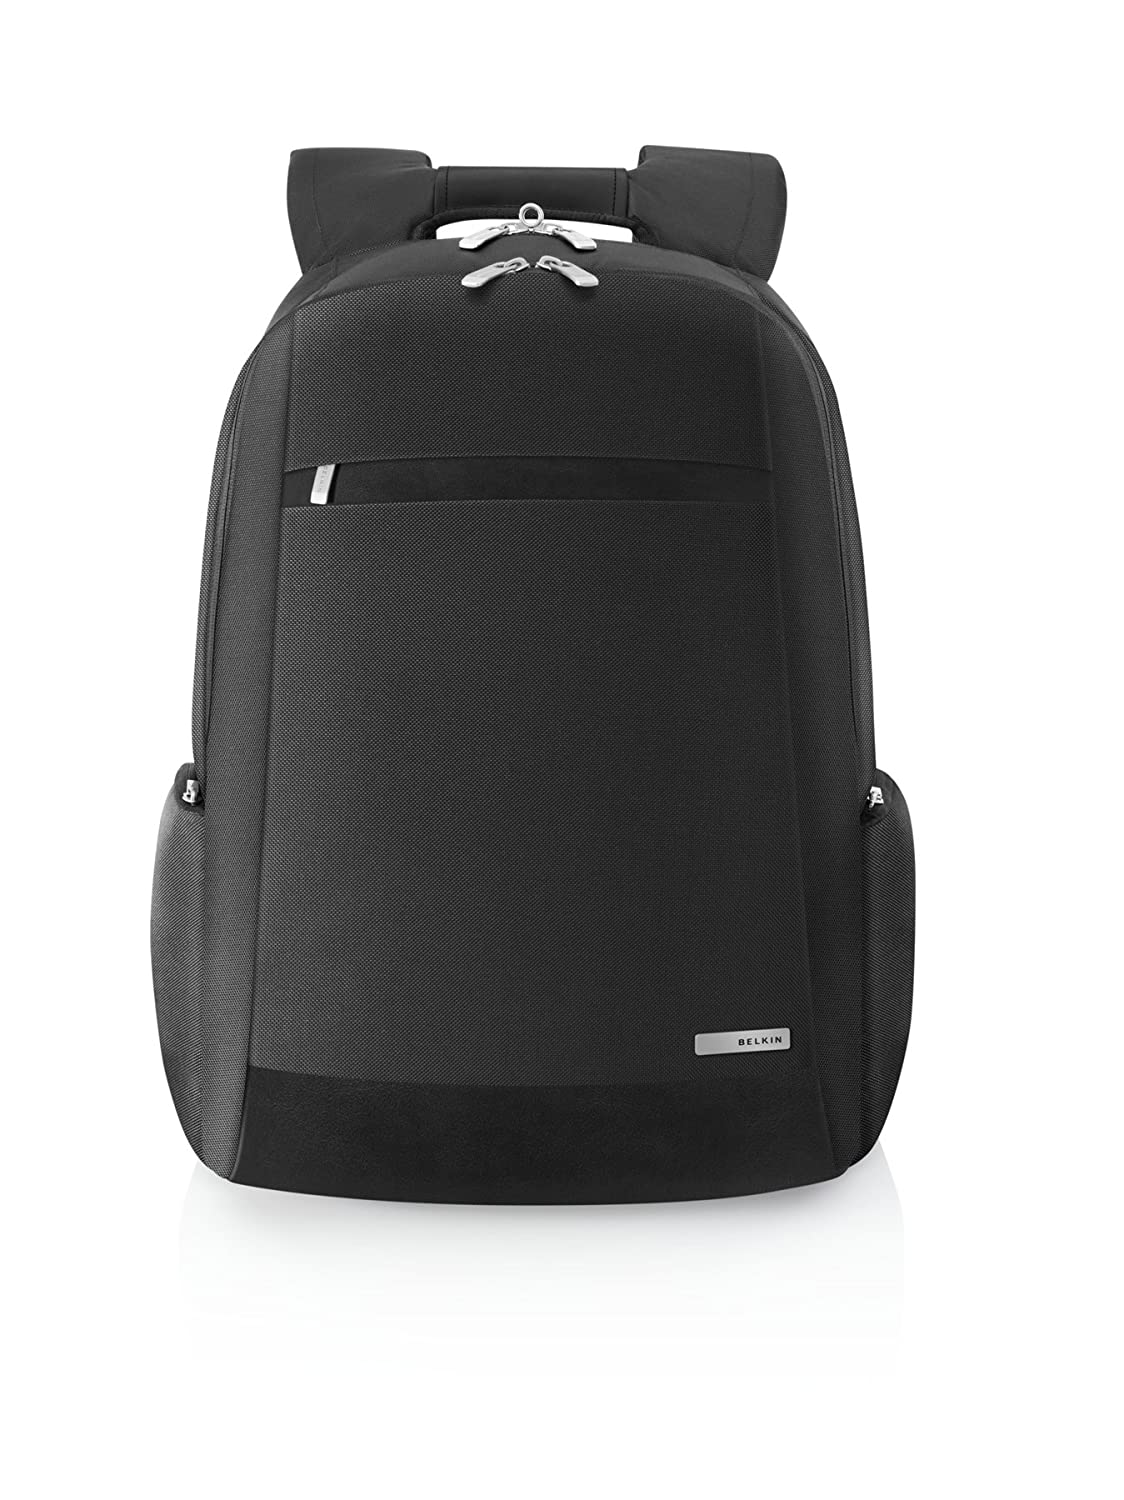 Belkin Suit - Business-Rucksack